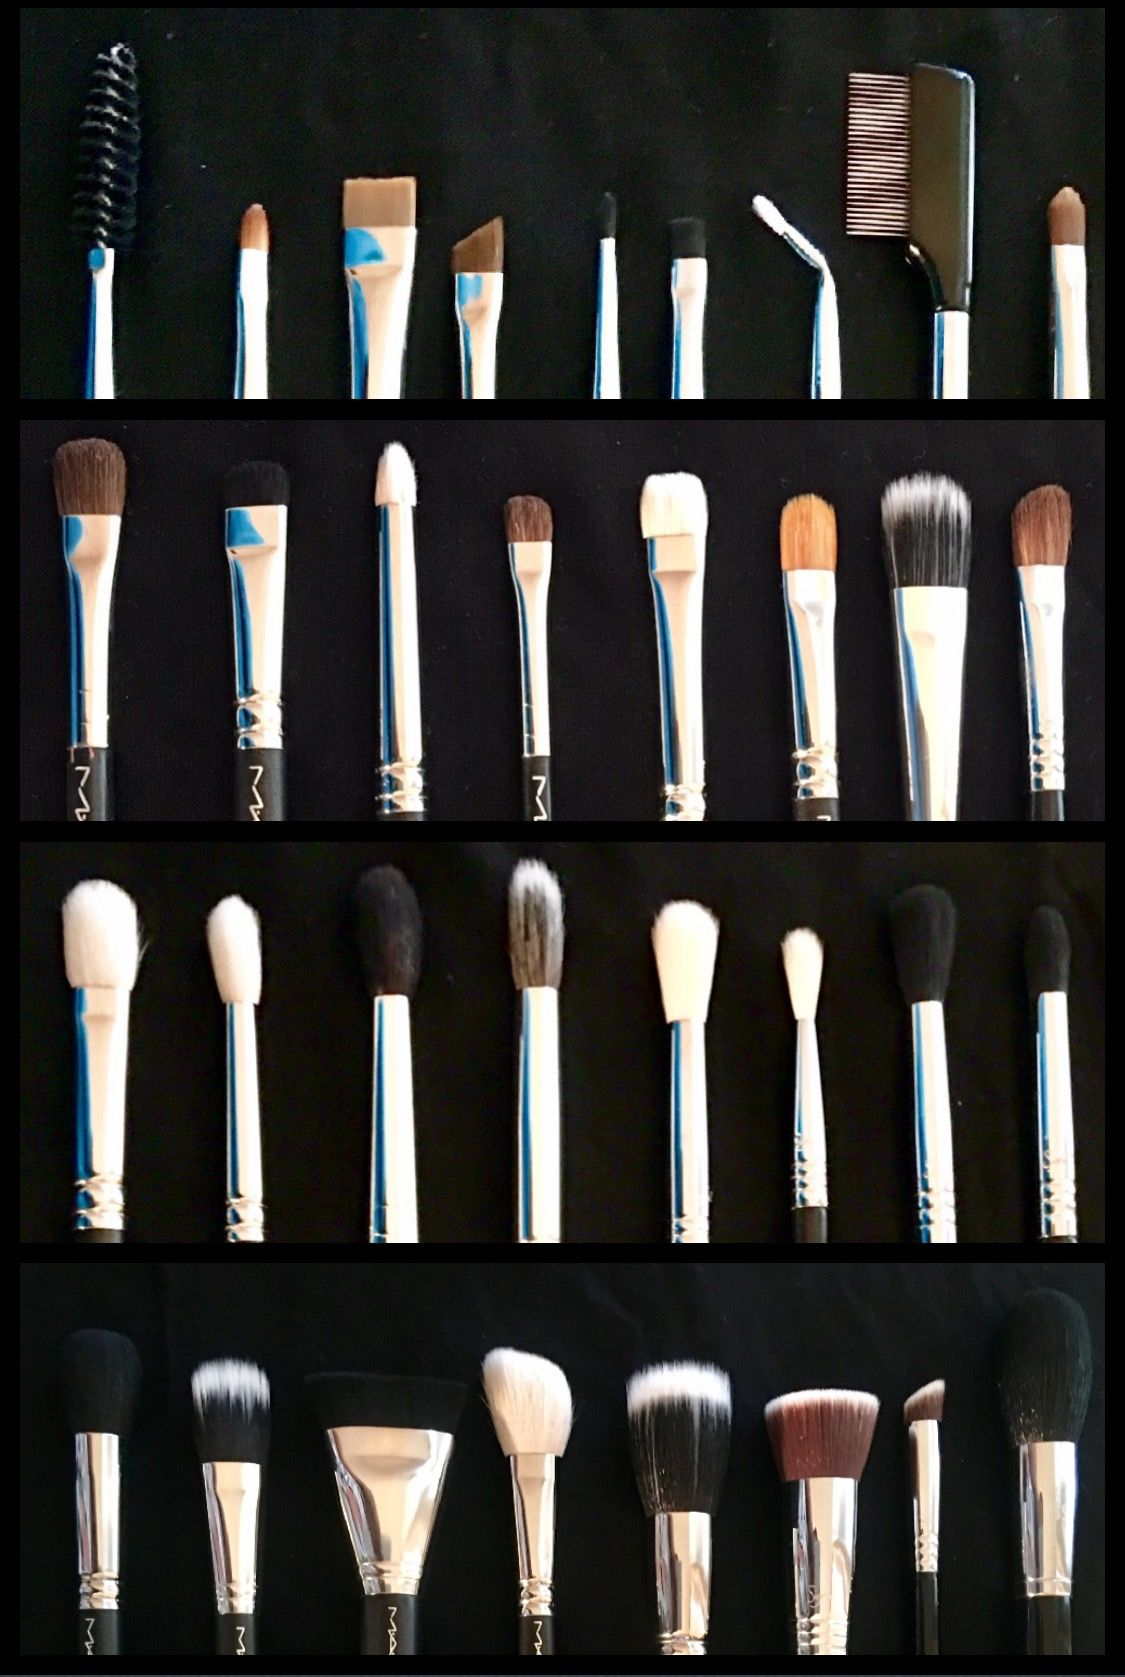 MAKEUP BRUSHES 1st Row EYELINERS/BROWS/LIP MAC 204, MAC